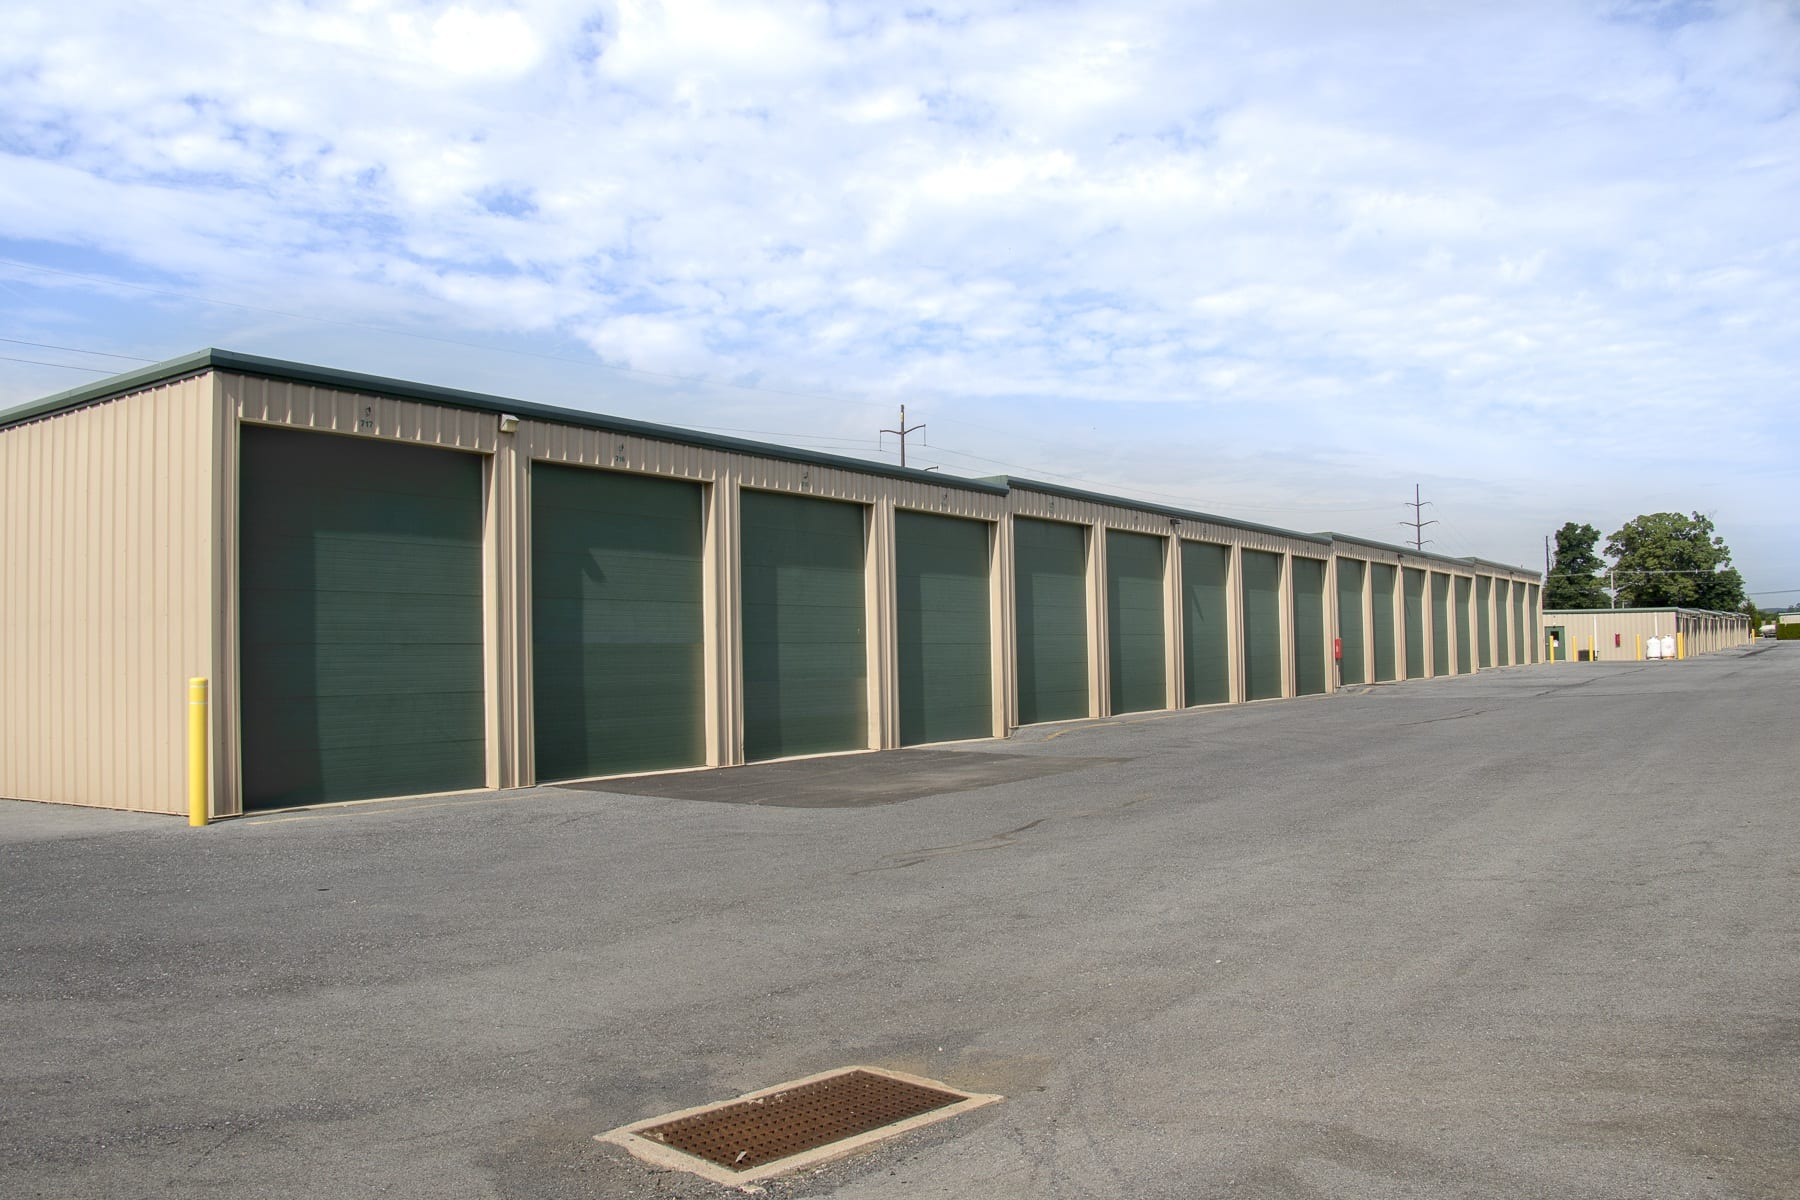 XL Storage units @ Storage World